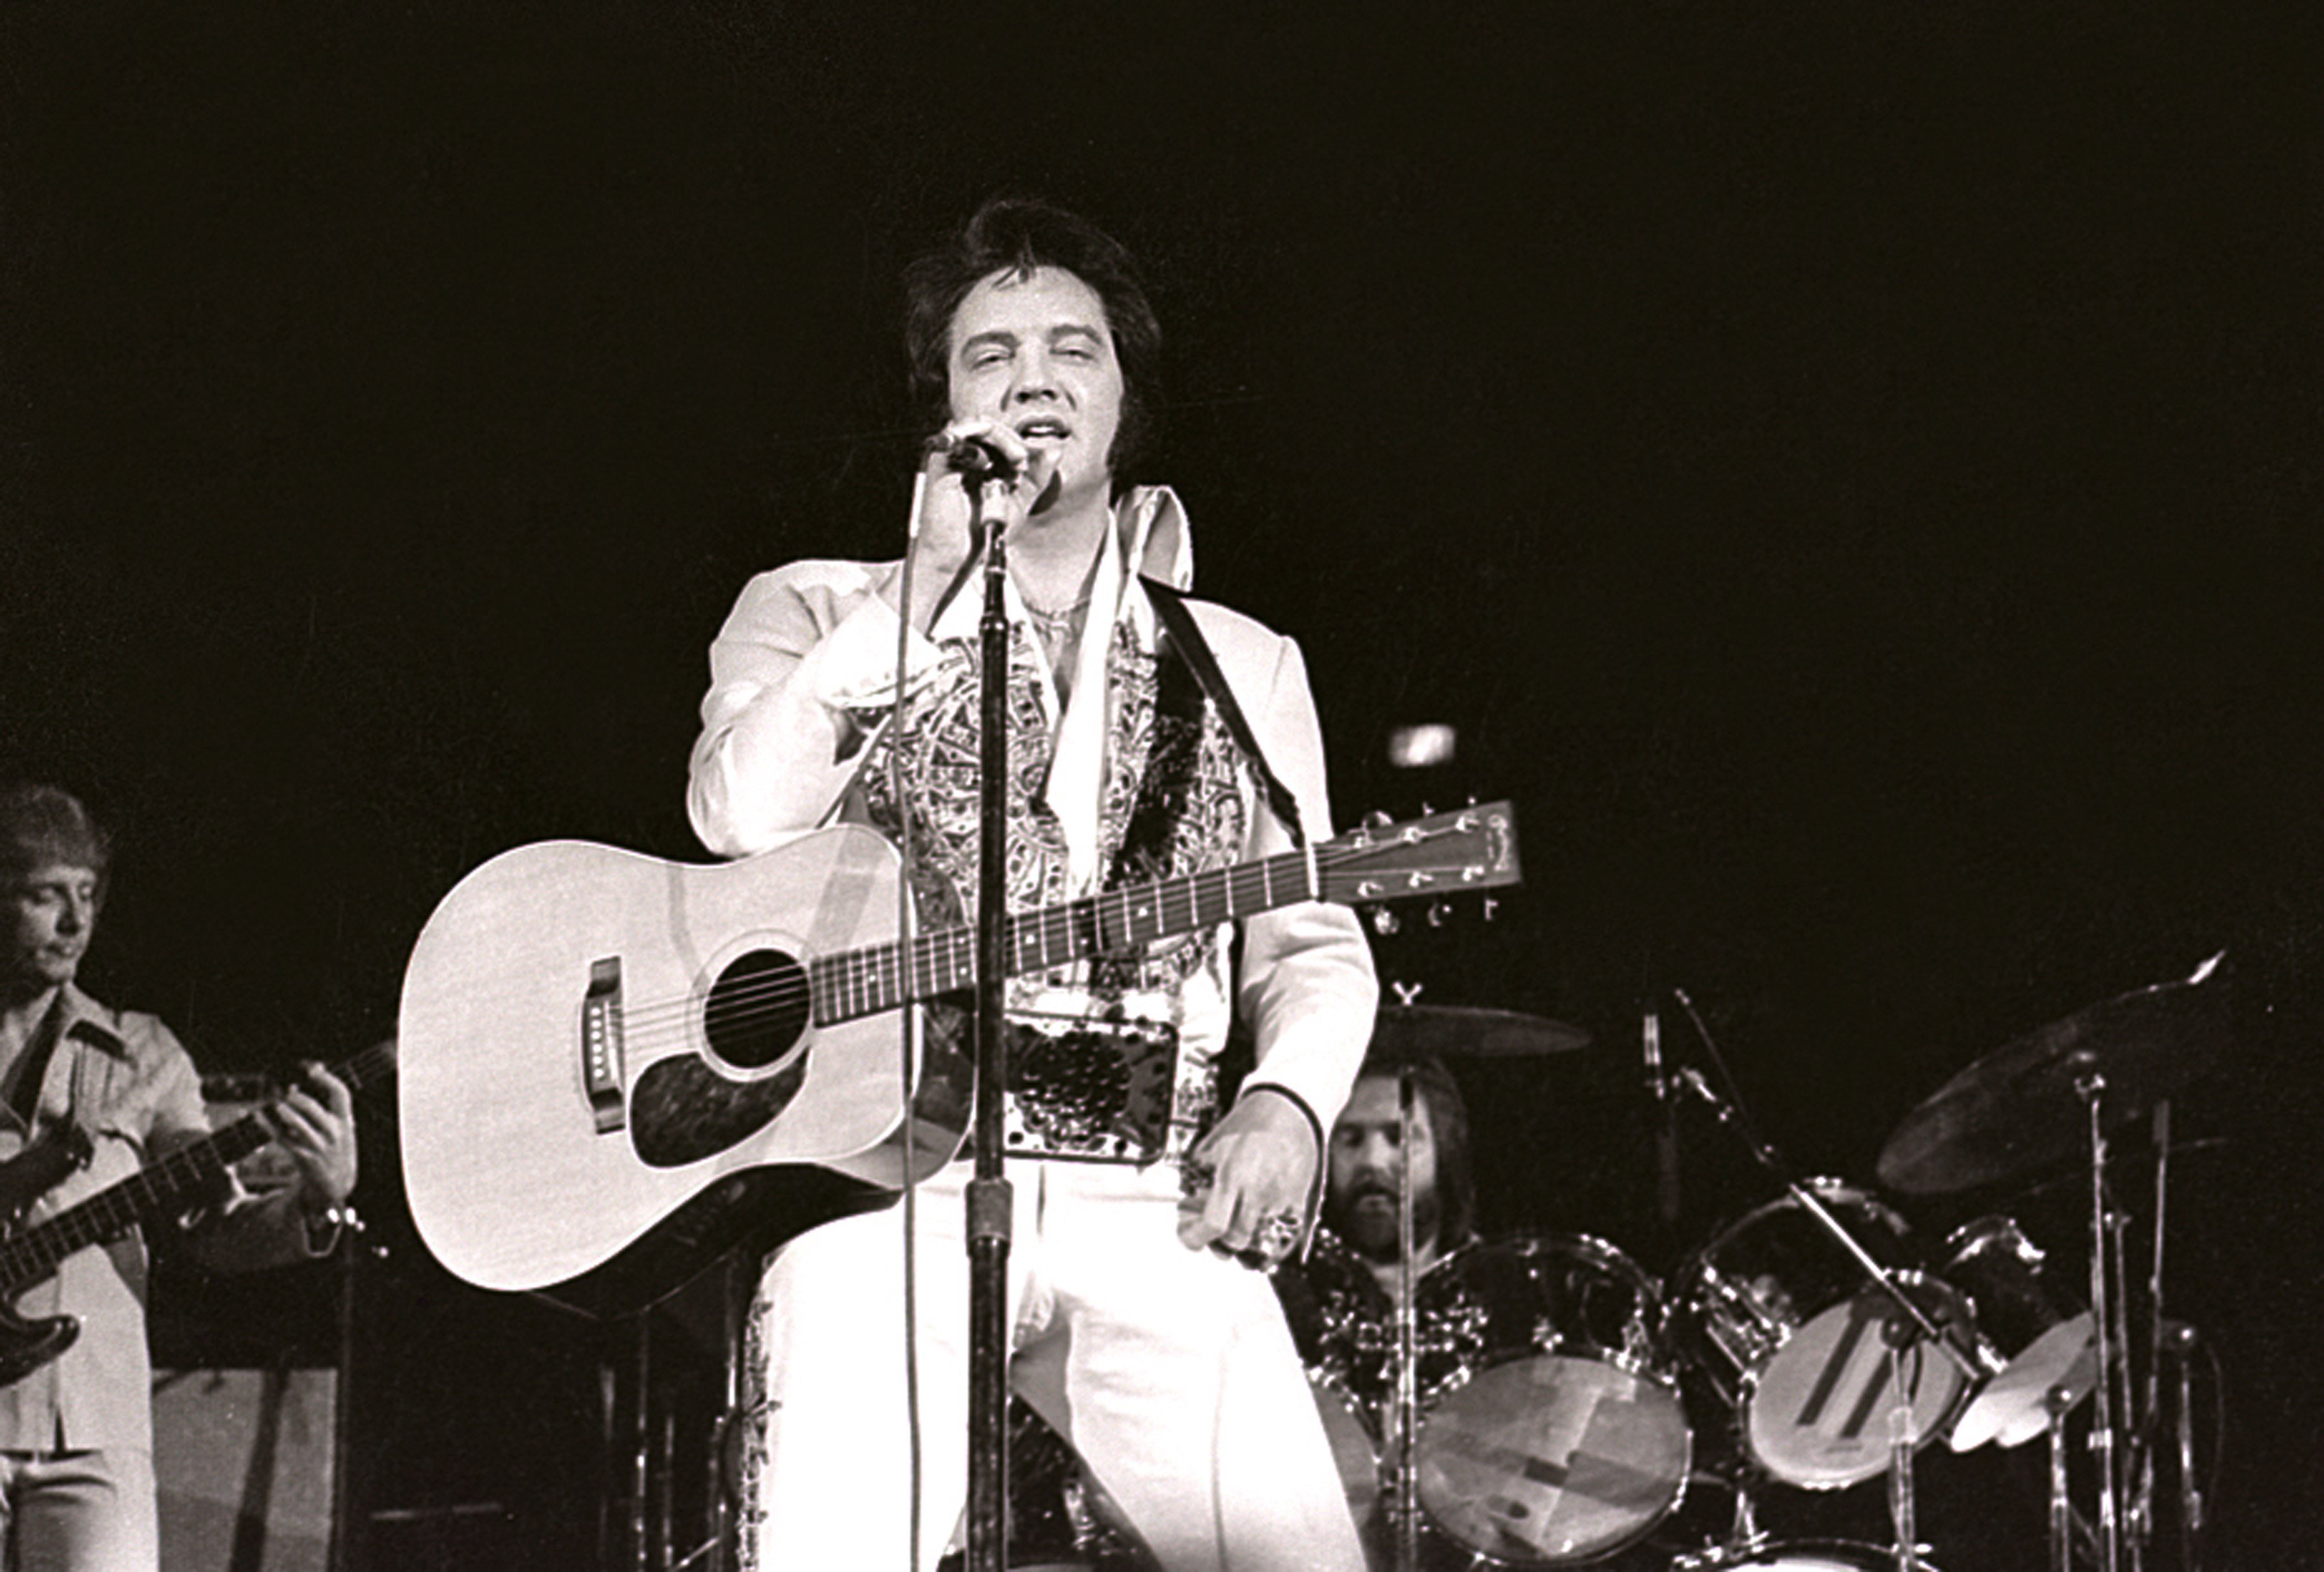 The late Elvis Presley performing on stage | Photo: Getty Images